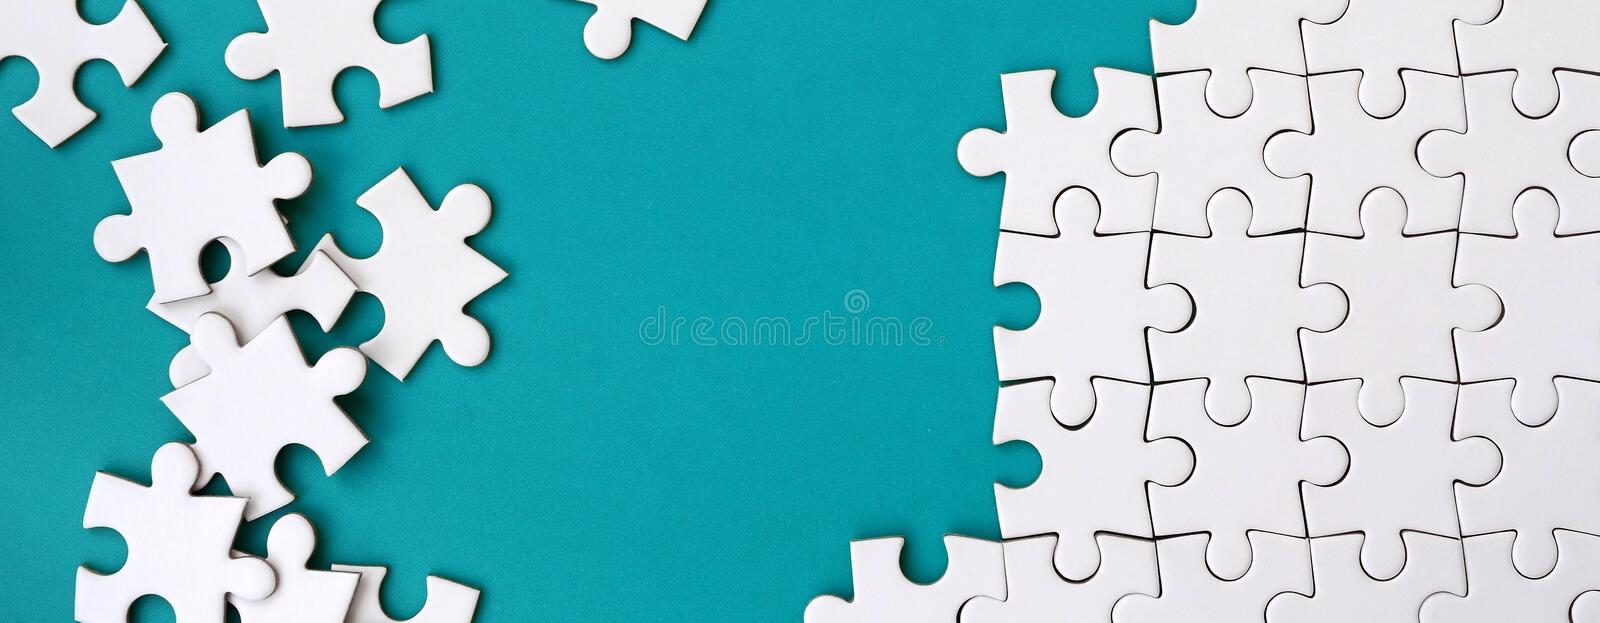 Fragment of a folded white jigsaw puzzle and a pile of uncombed puzzle elements against the background of a blue surface. Texture royalty free stock photo